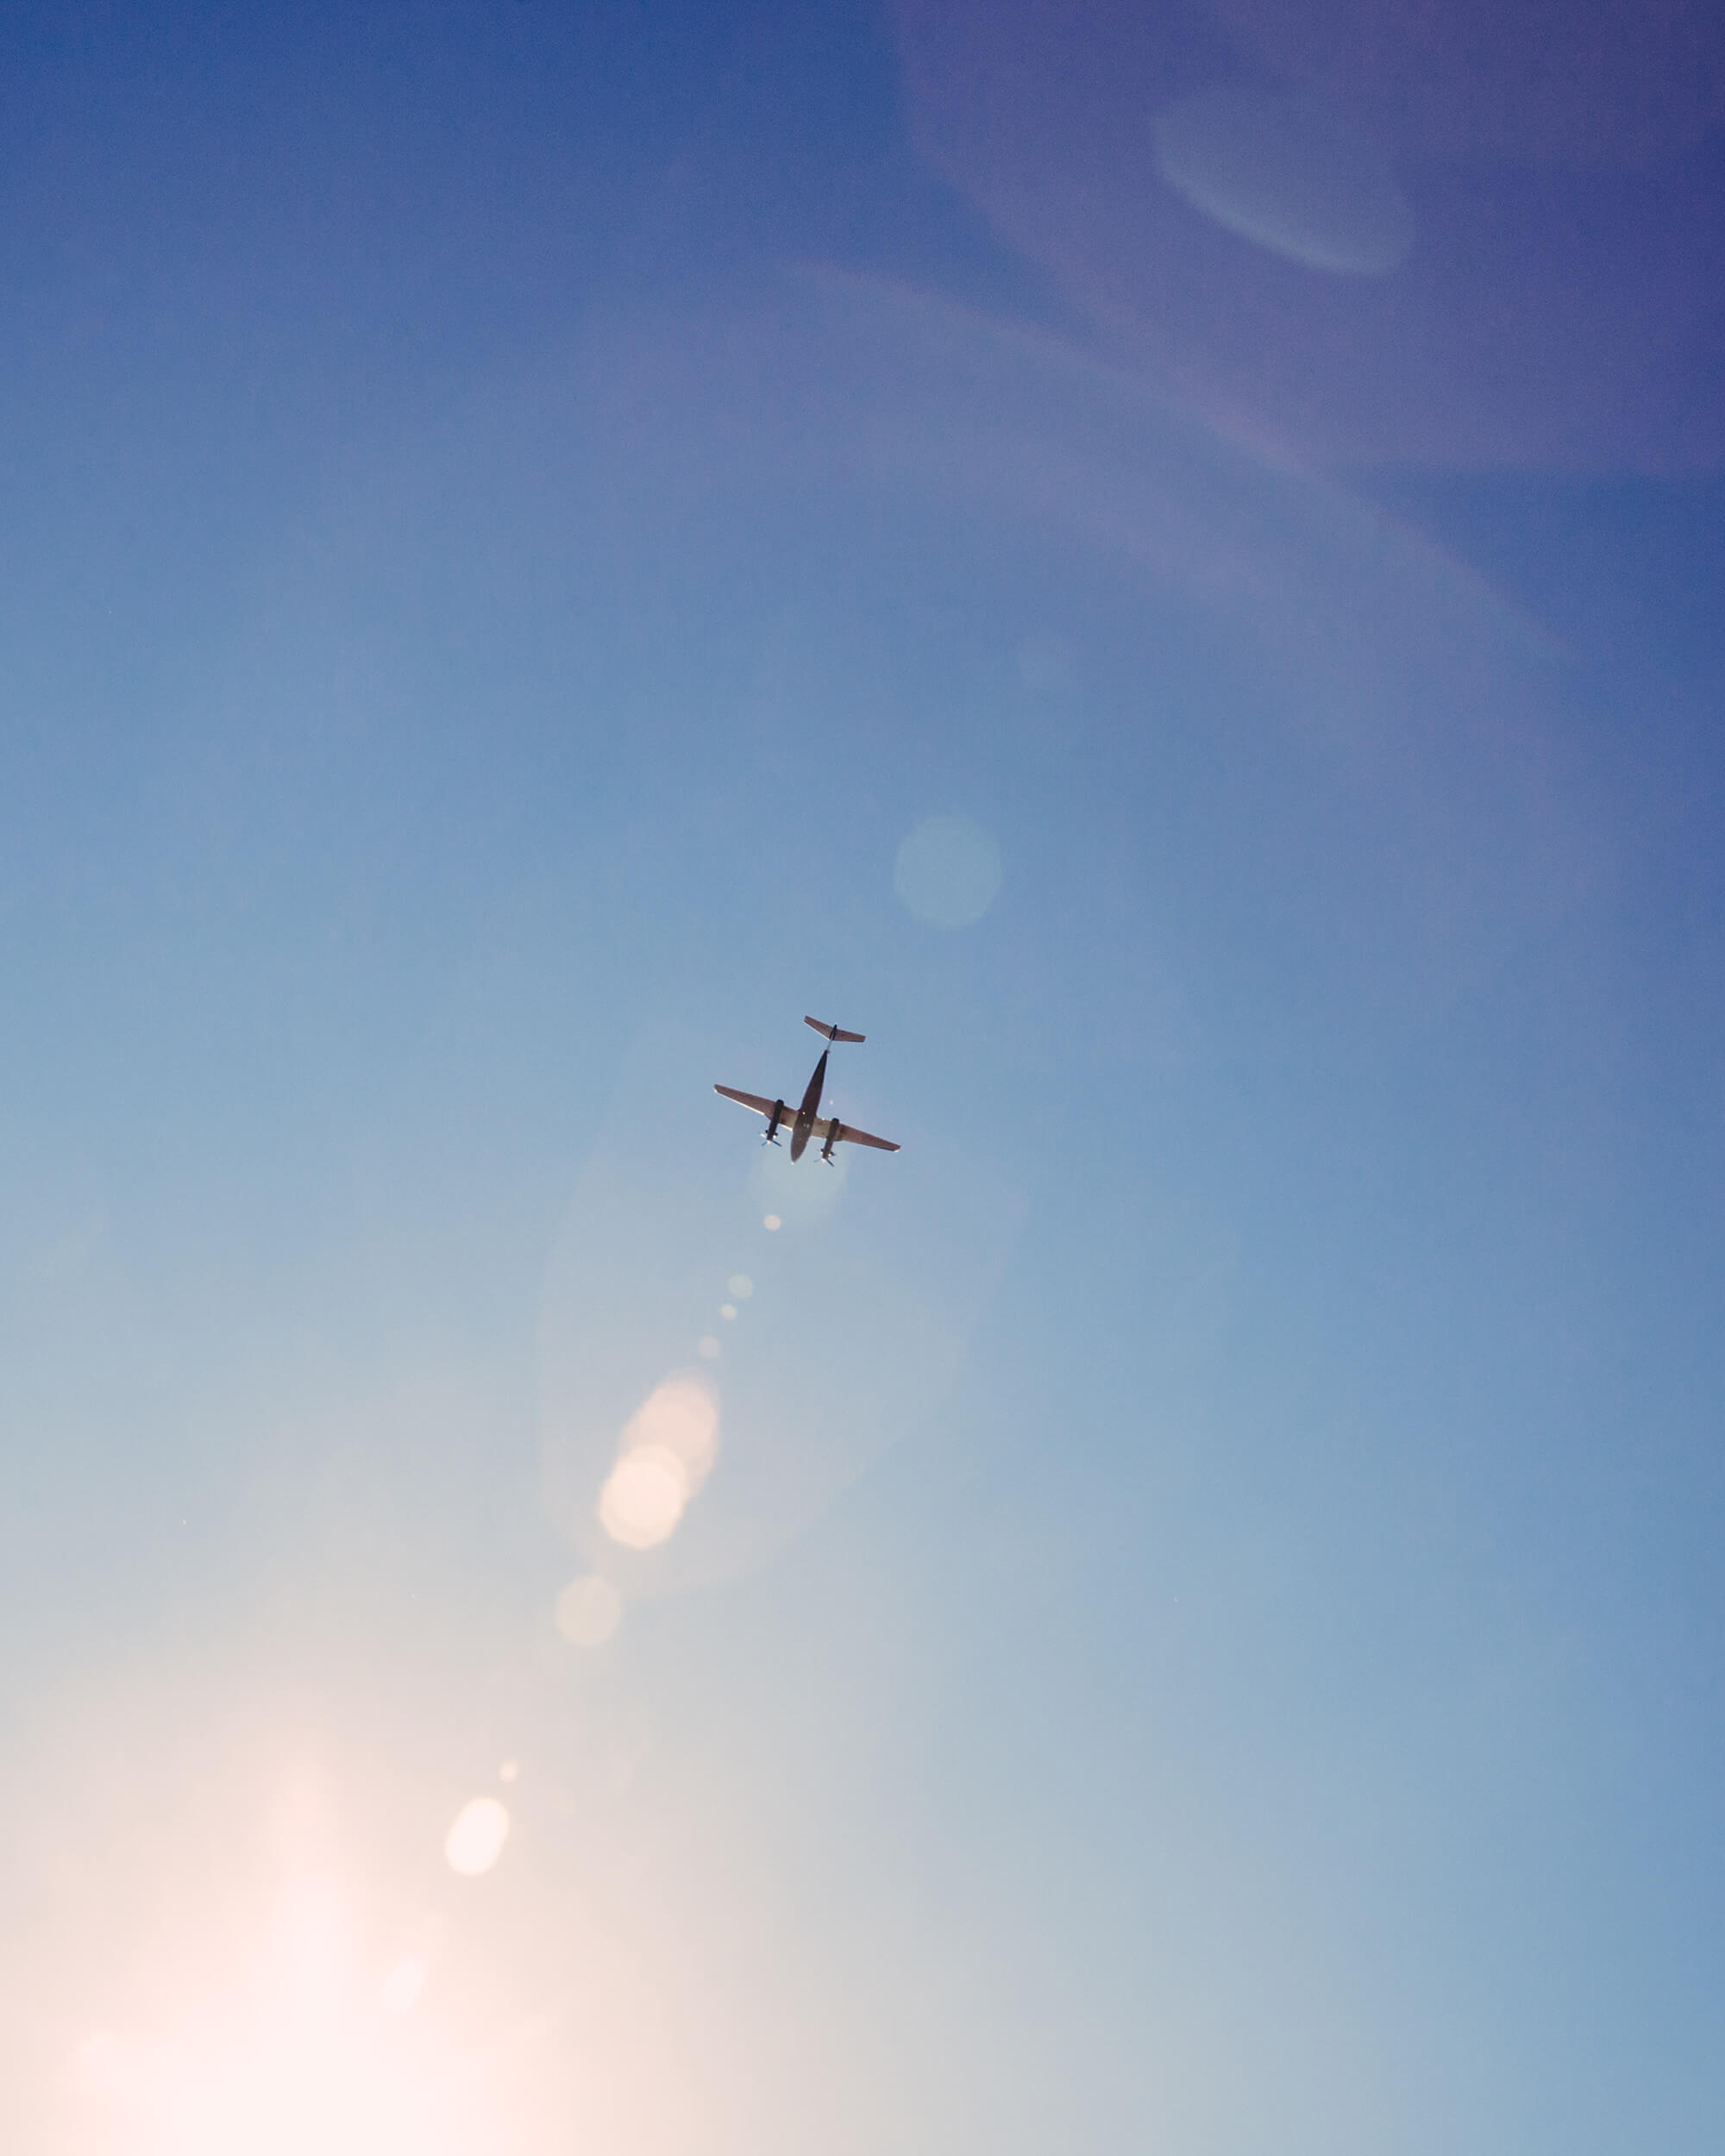 chattanooga-airport-plane-in-sky.jpg